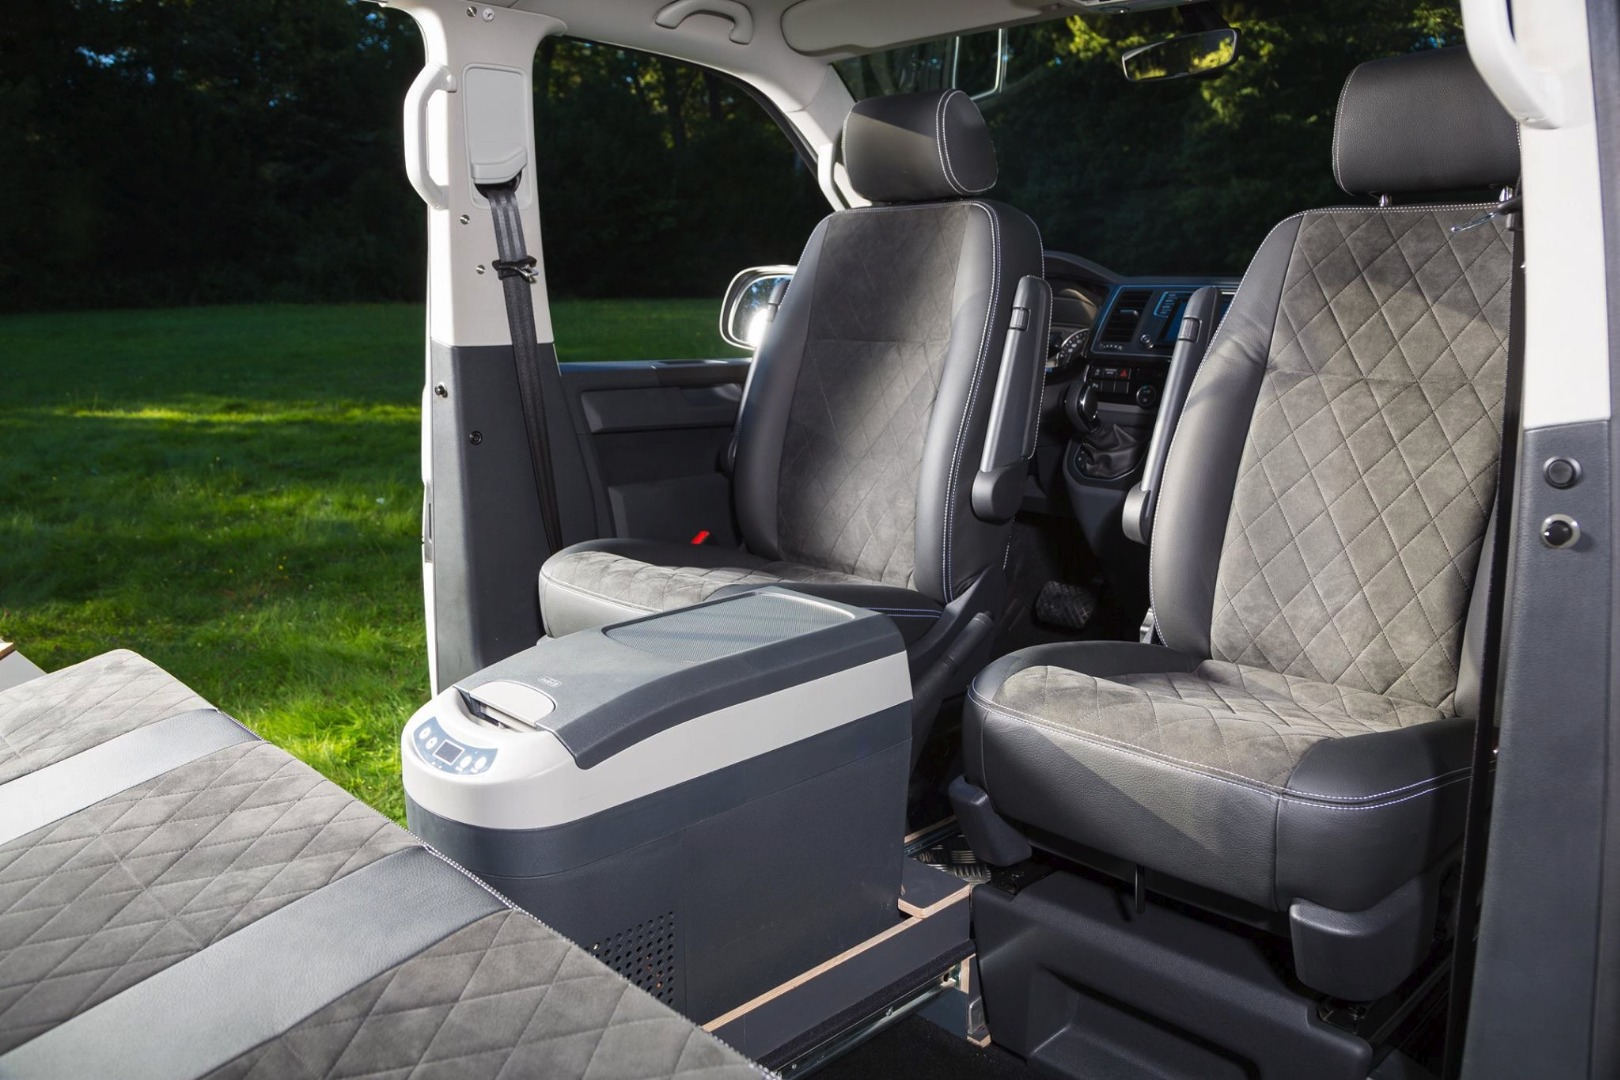 Water Resistant S- tech automotive Transit Camper 06-12 Heavy Duty Durable Single Seat Cover Grey